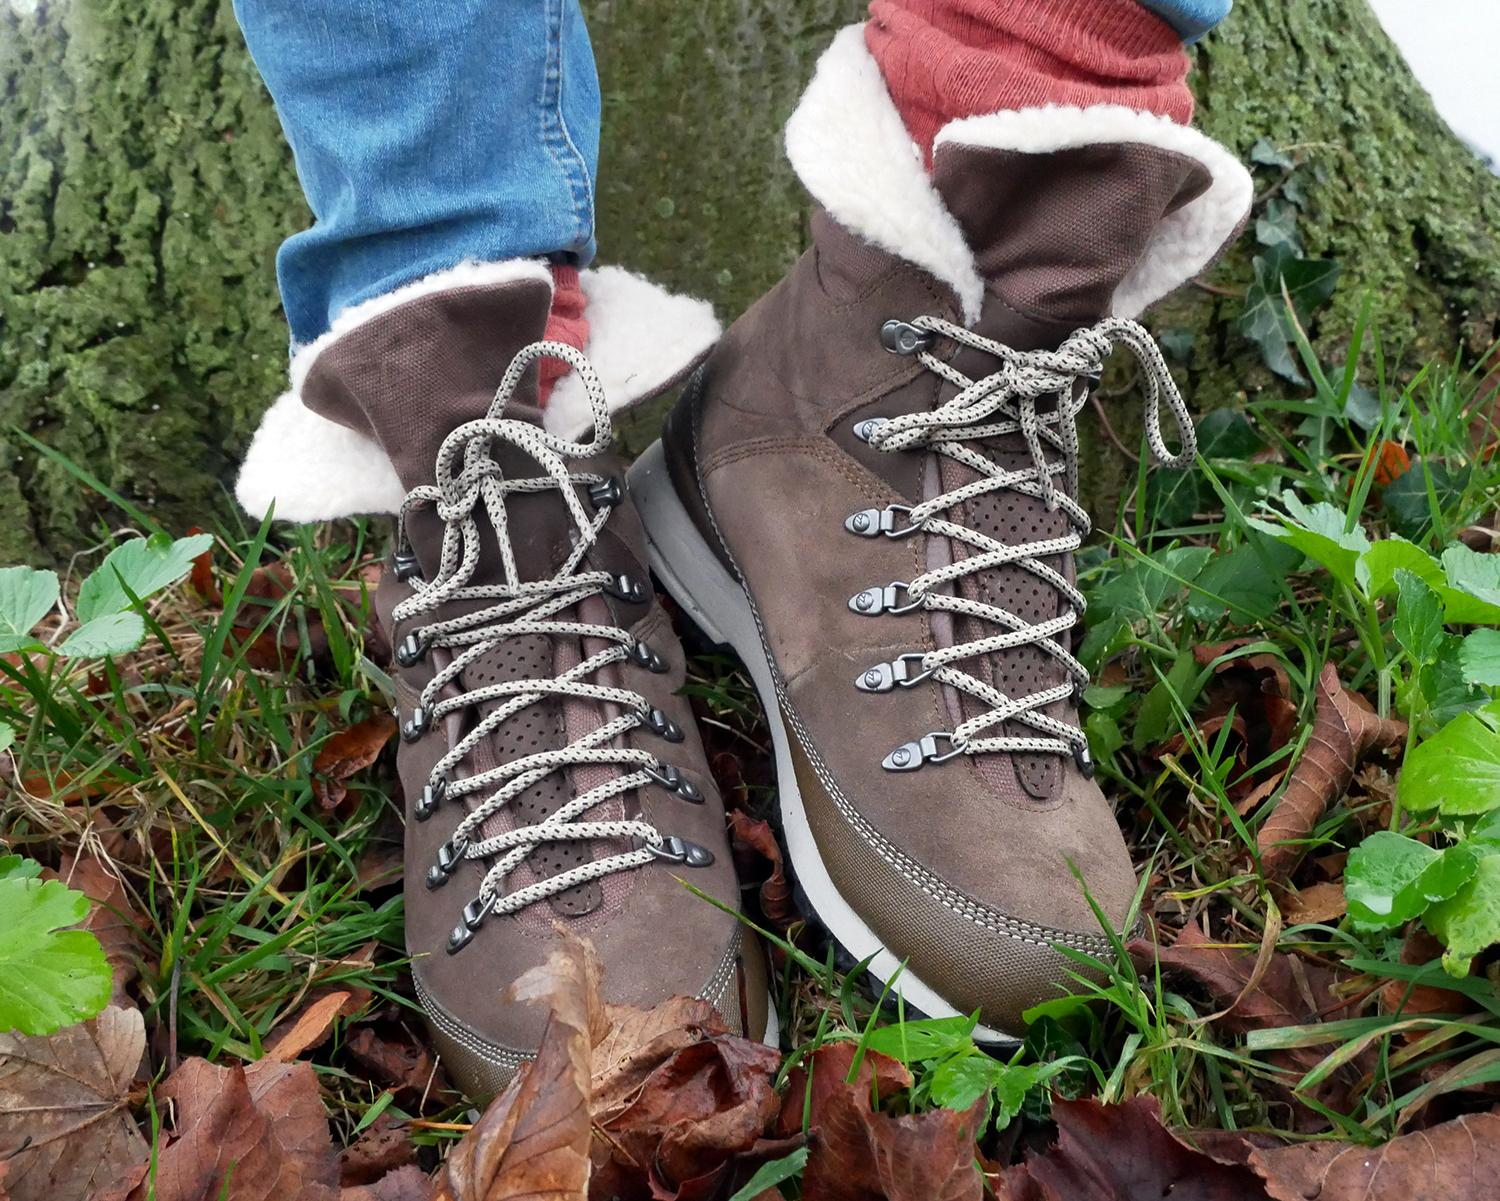 COMPETITION: Win a pair of Hi-Tec hiking boots